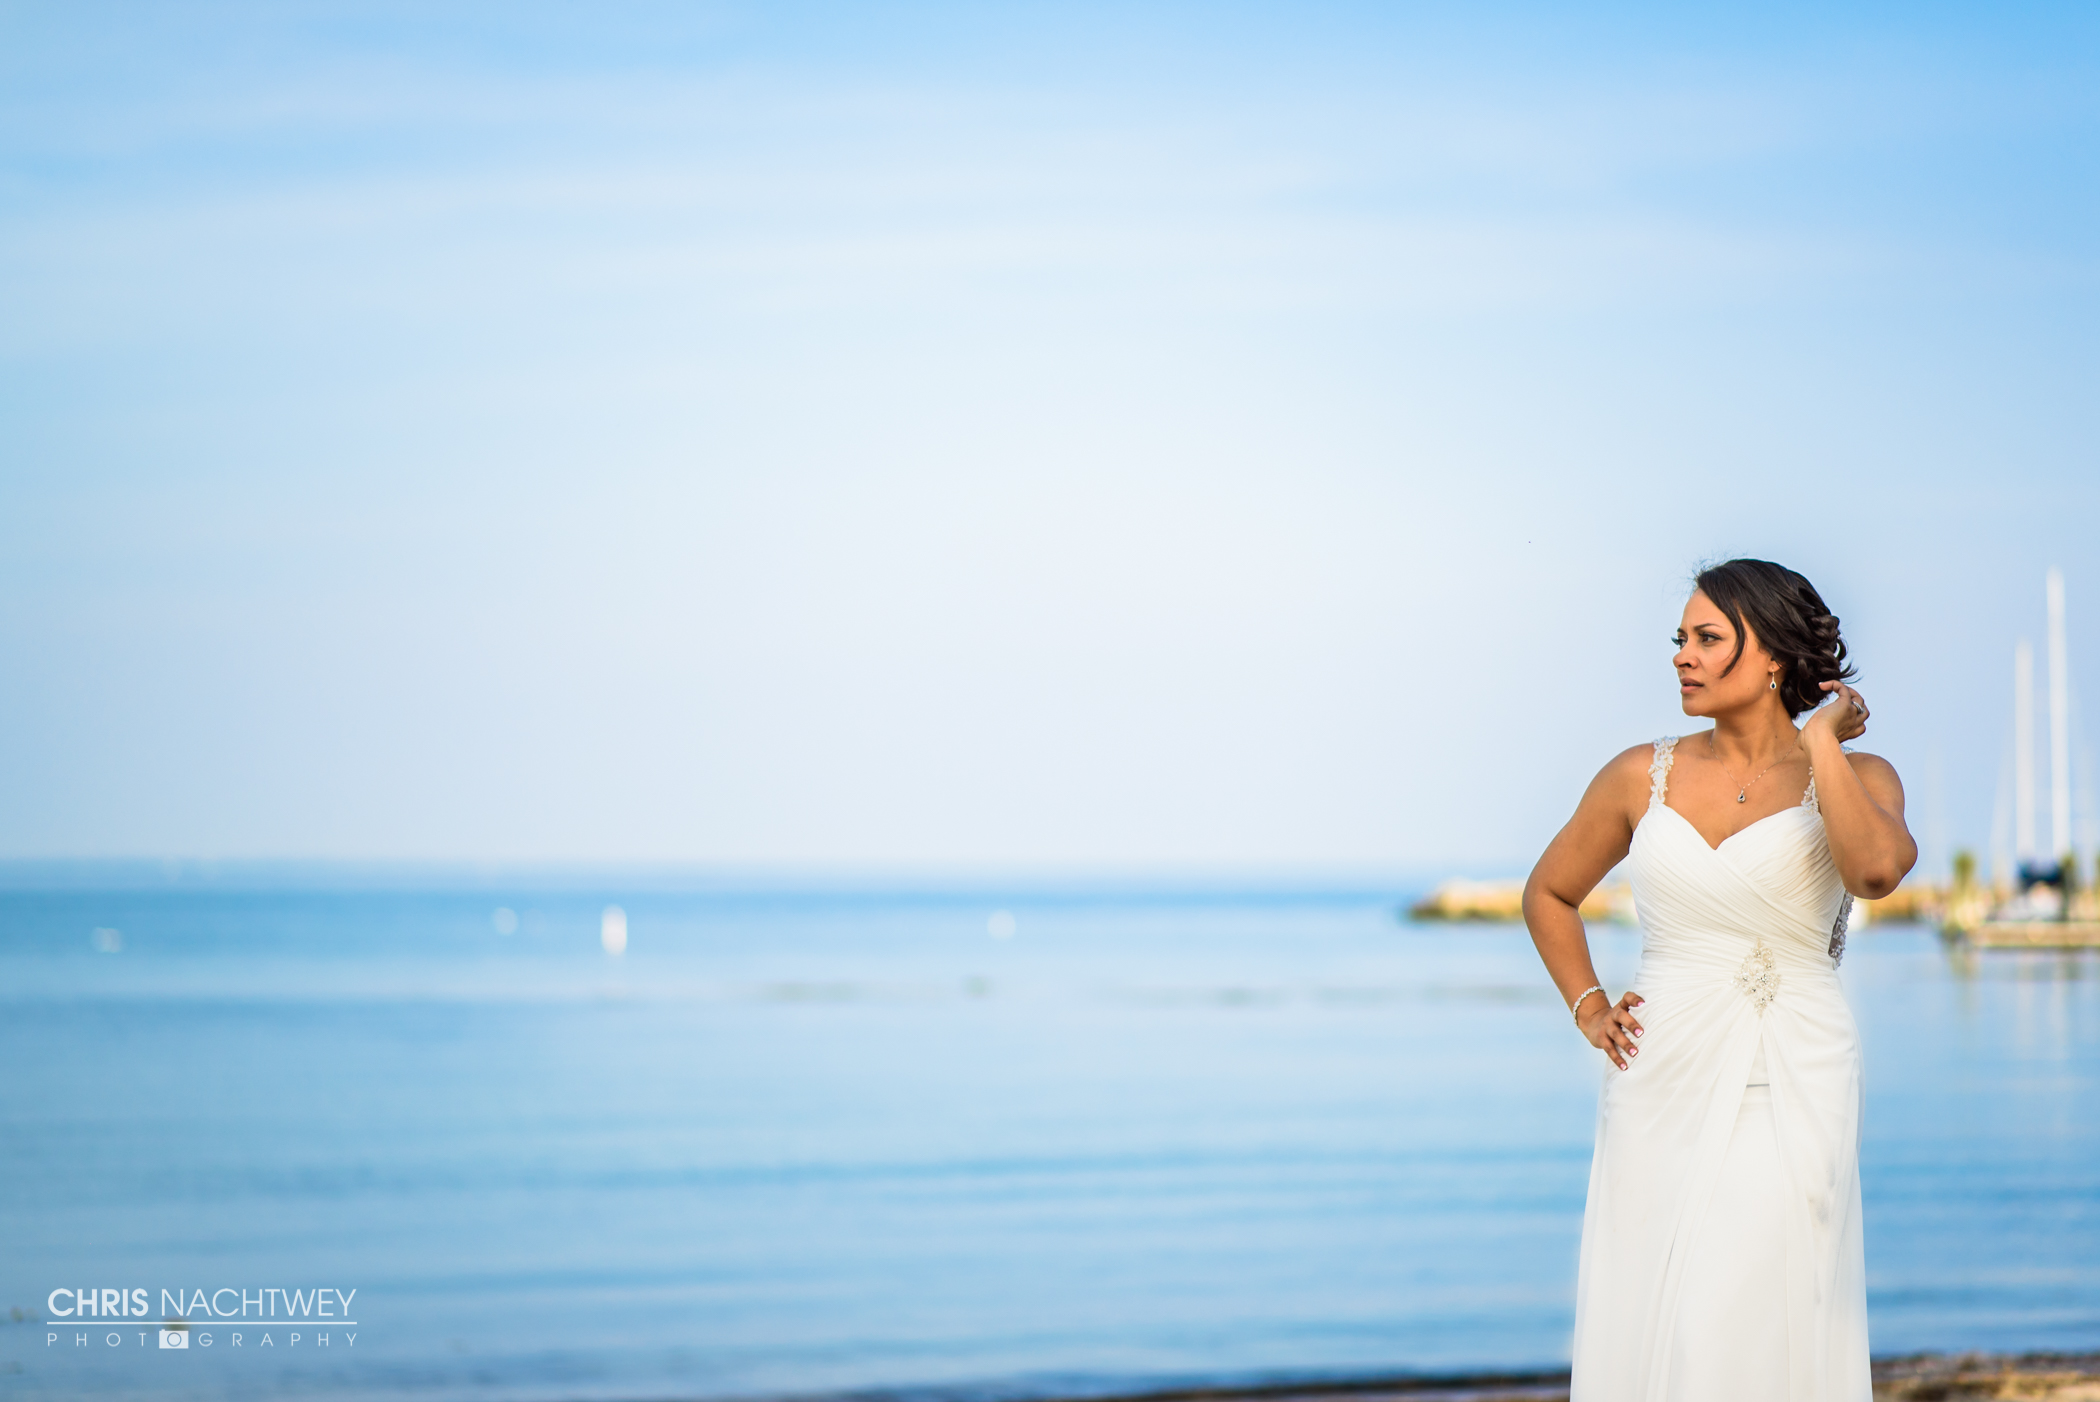 wedding-photographers-connecticut-chris-nachtwey-2016.jpg